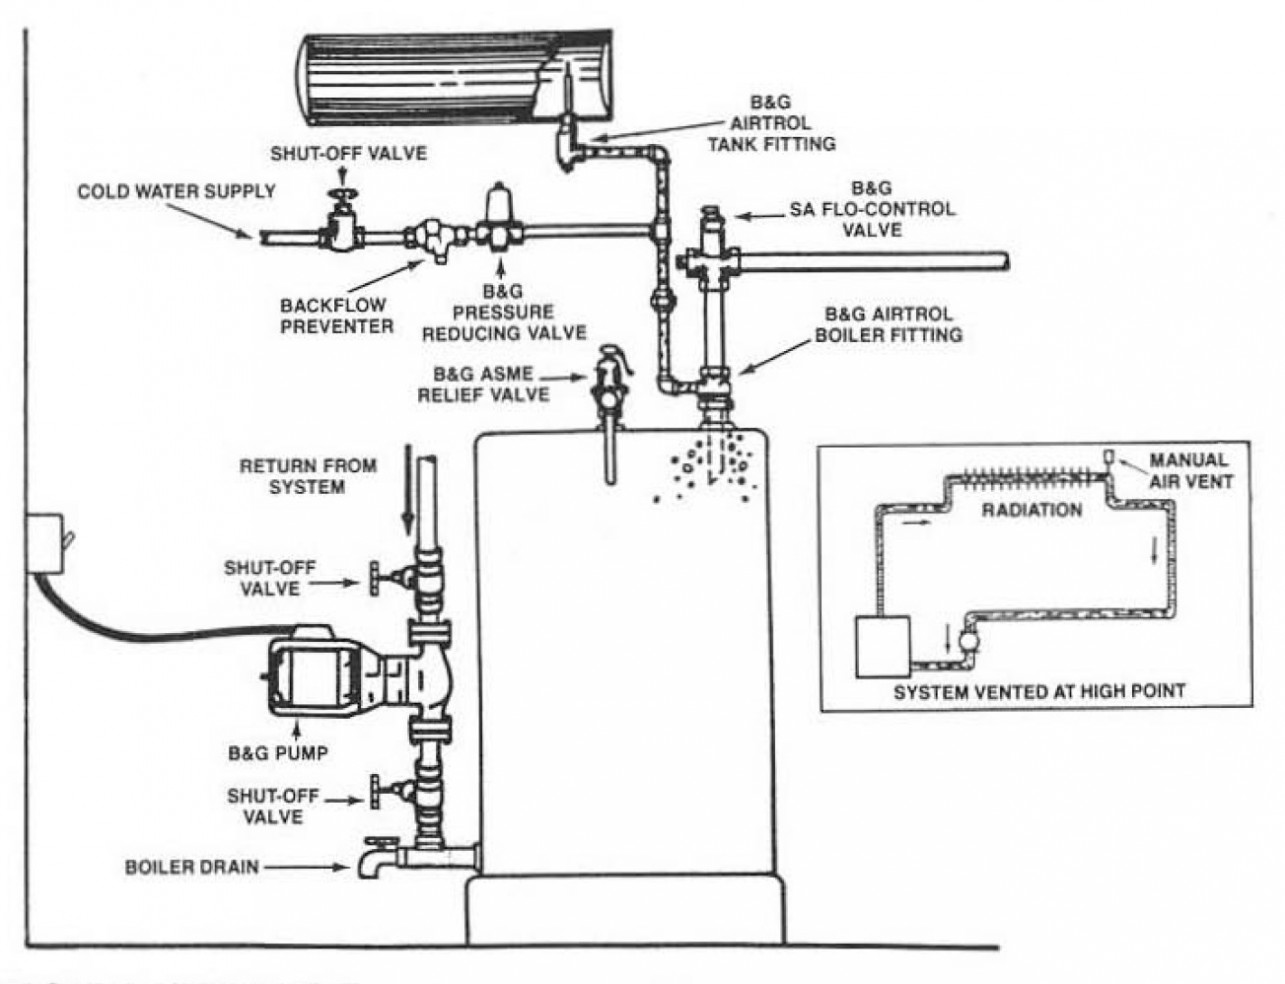 centrifugal pump mechanical seal diagram cause and effect word bell gossett series e 1510 end suction pumps